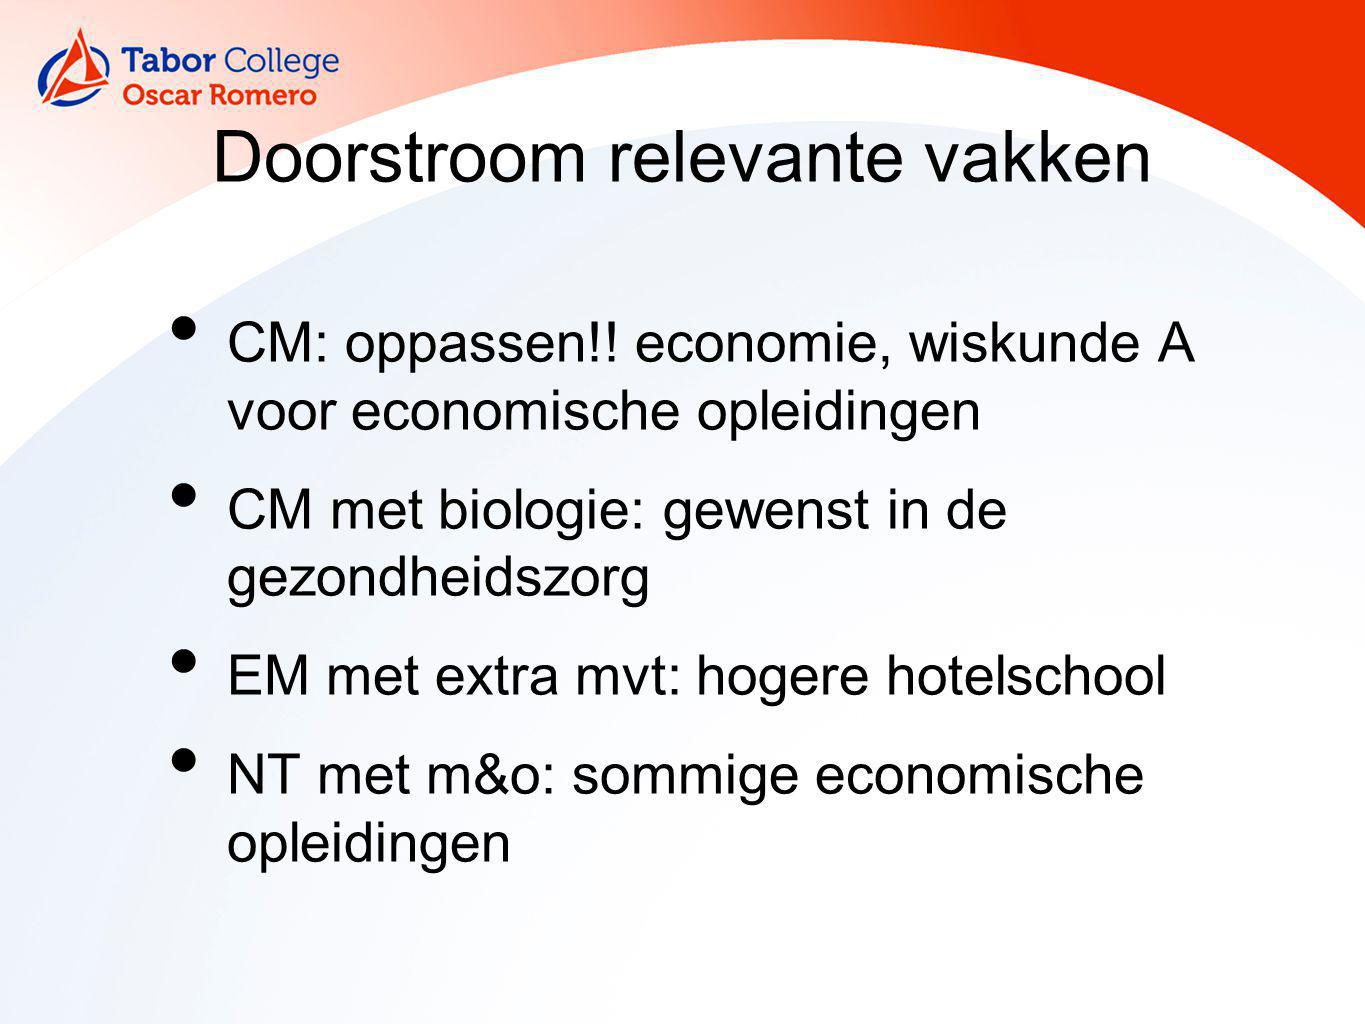 Doorstroom relevante vakken